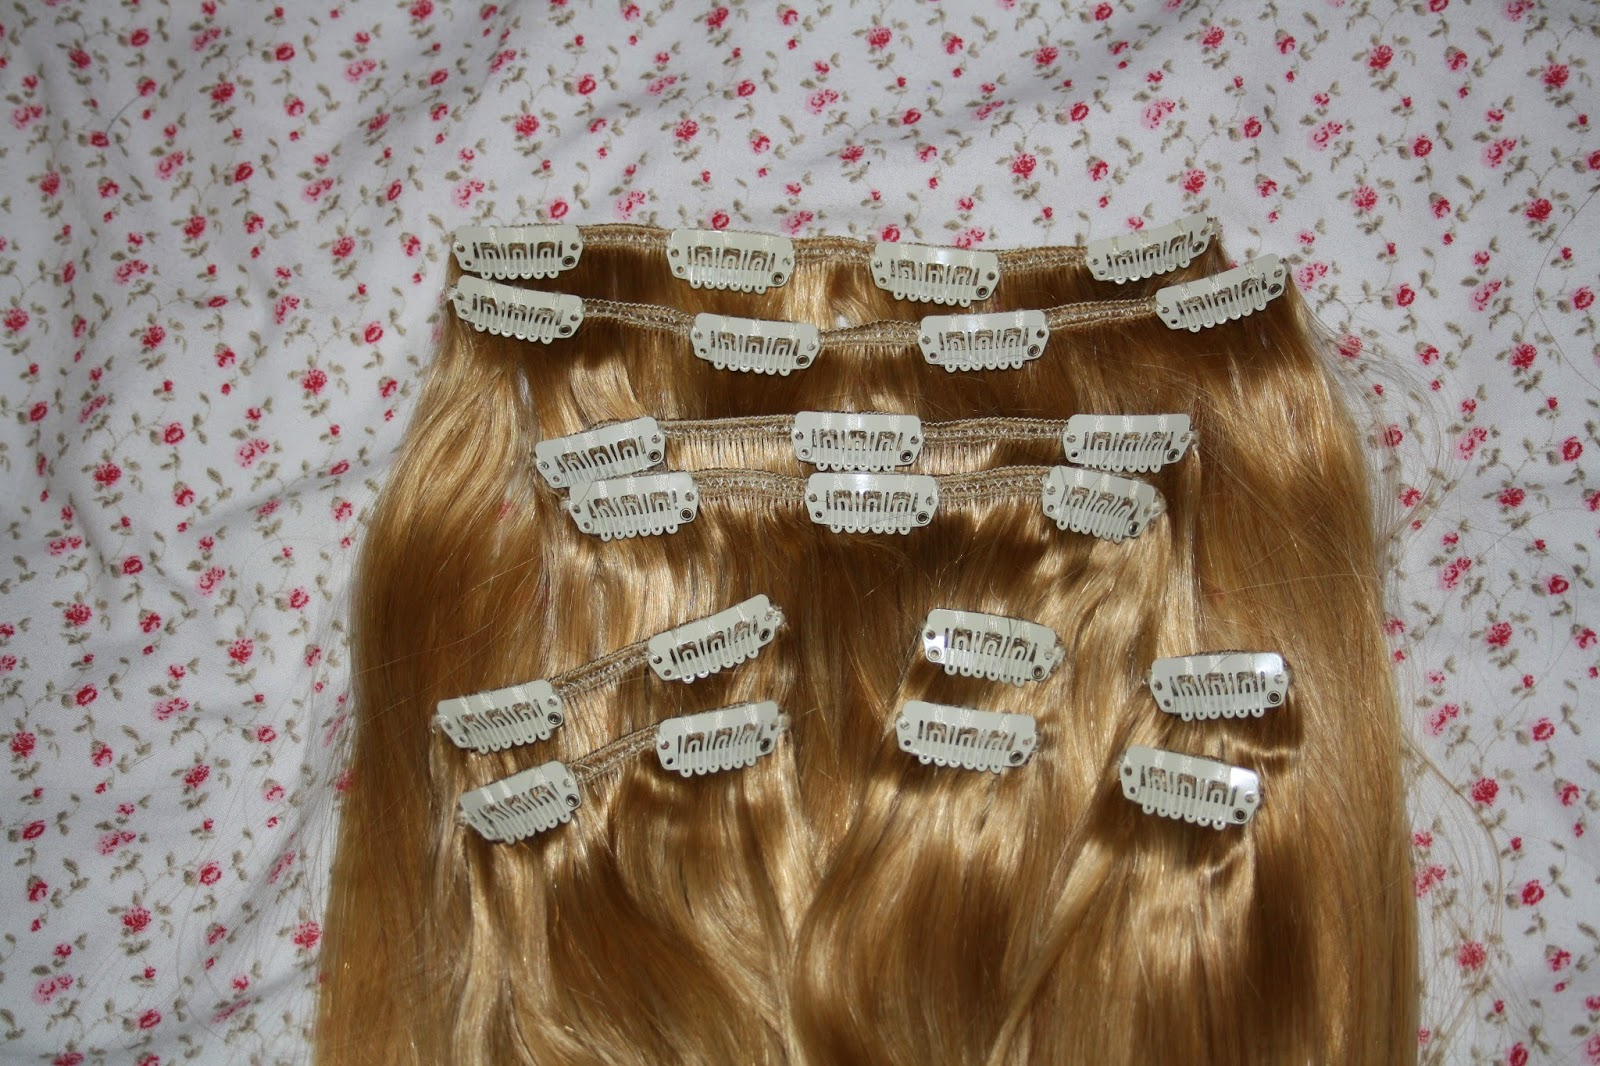 These Hair Extensions Are 20inches Weigh 165 Grams And Cost 76 The Price Seems Average As Lush Do A Similar Set At 6999 For 150 Of